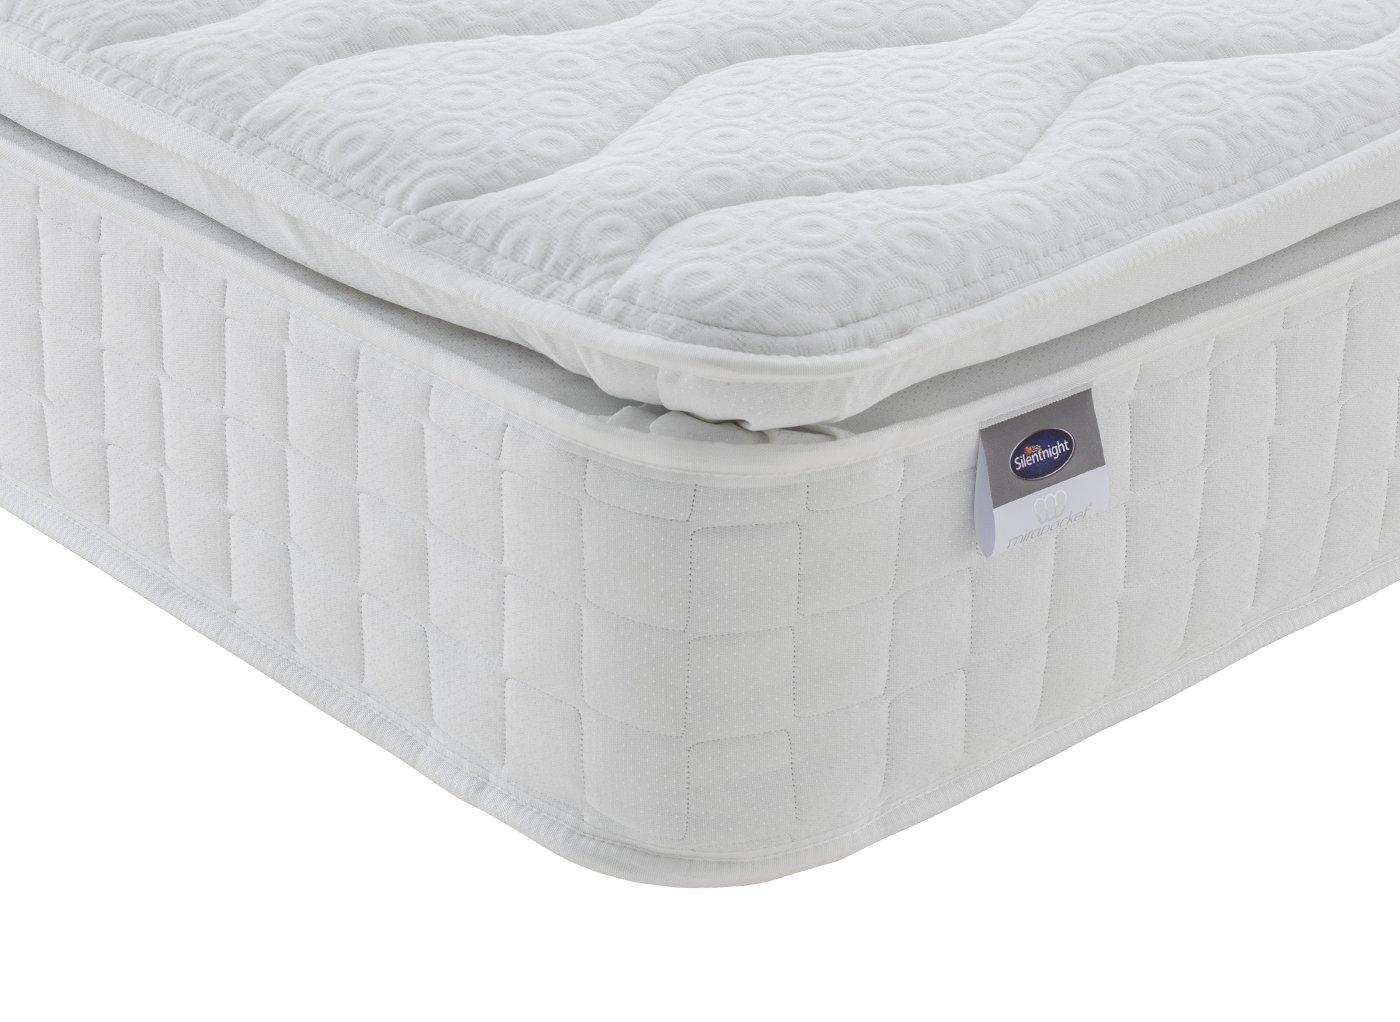 Silentnight Newbury Mirapocket Mattress